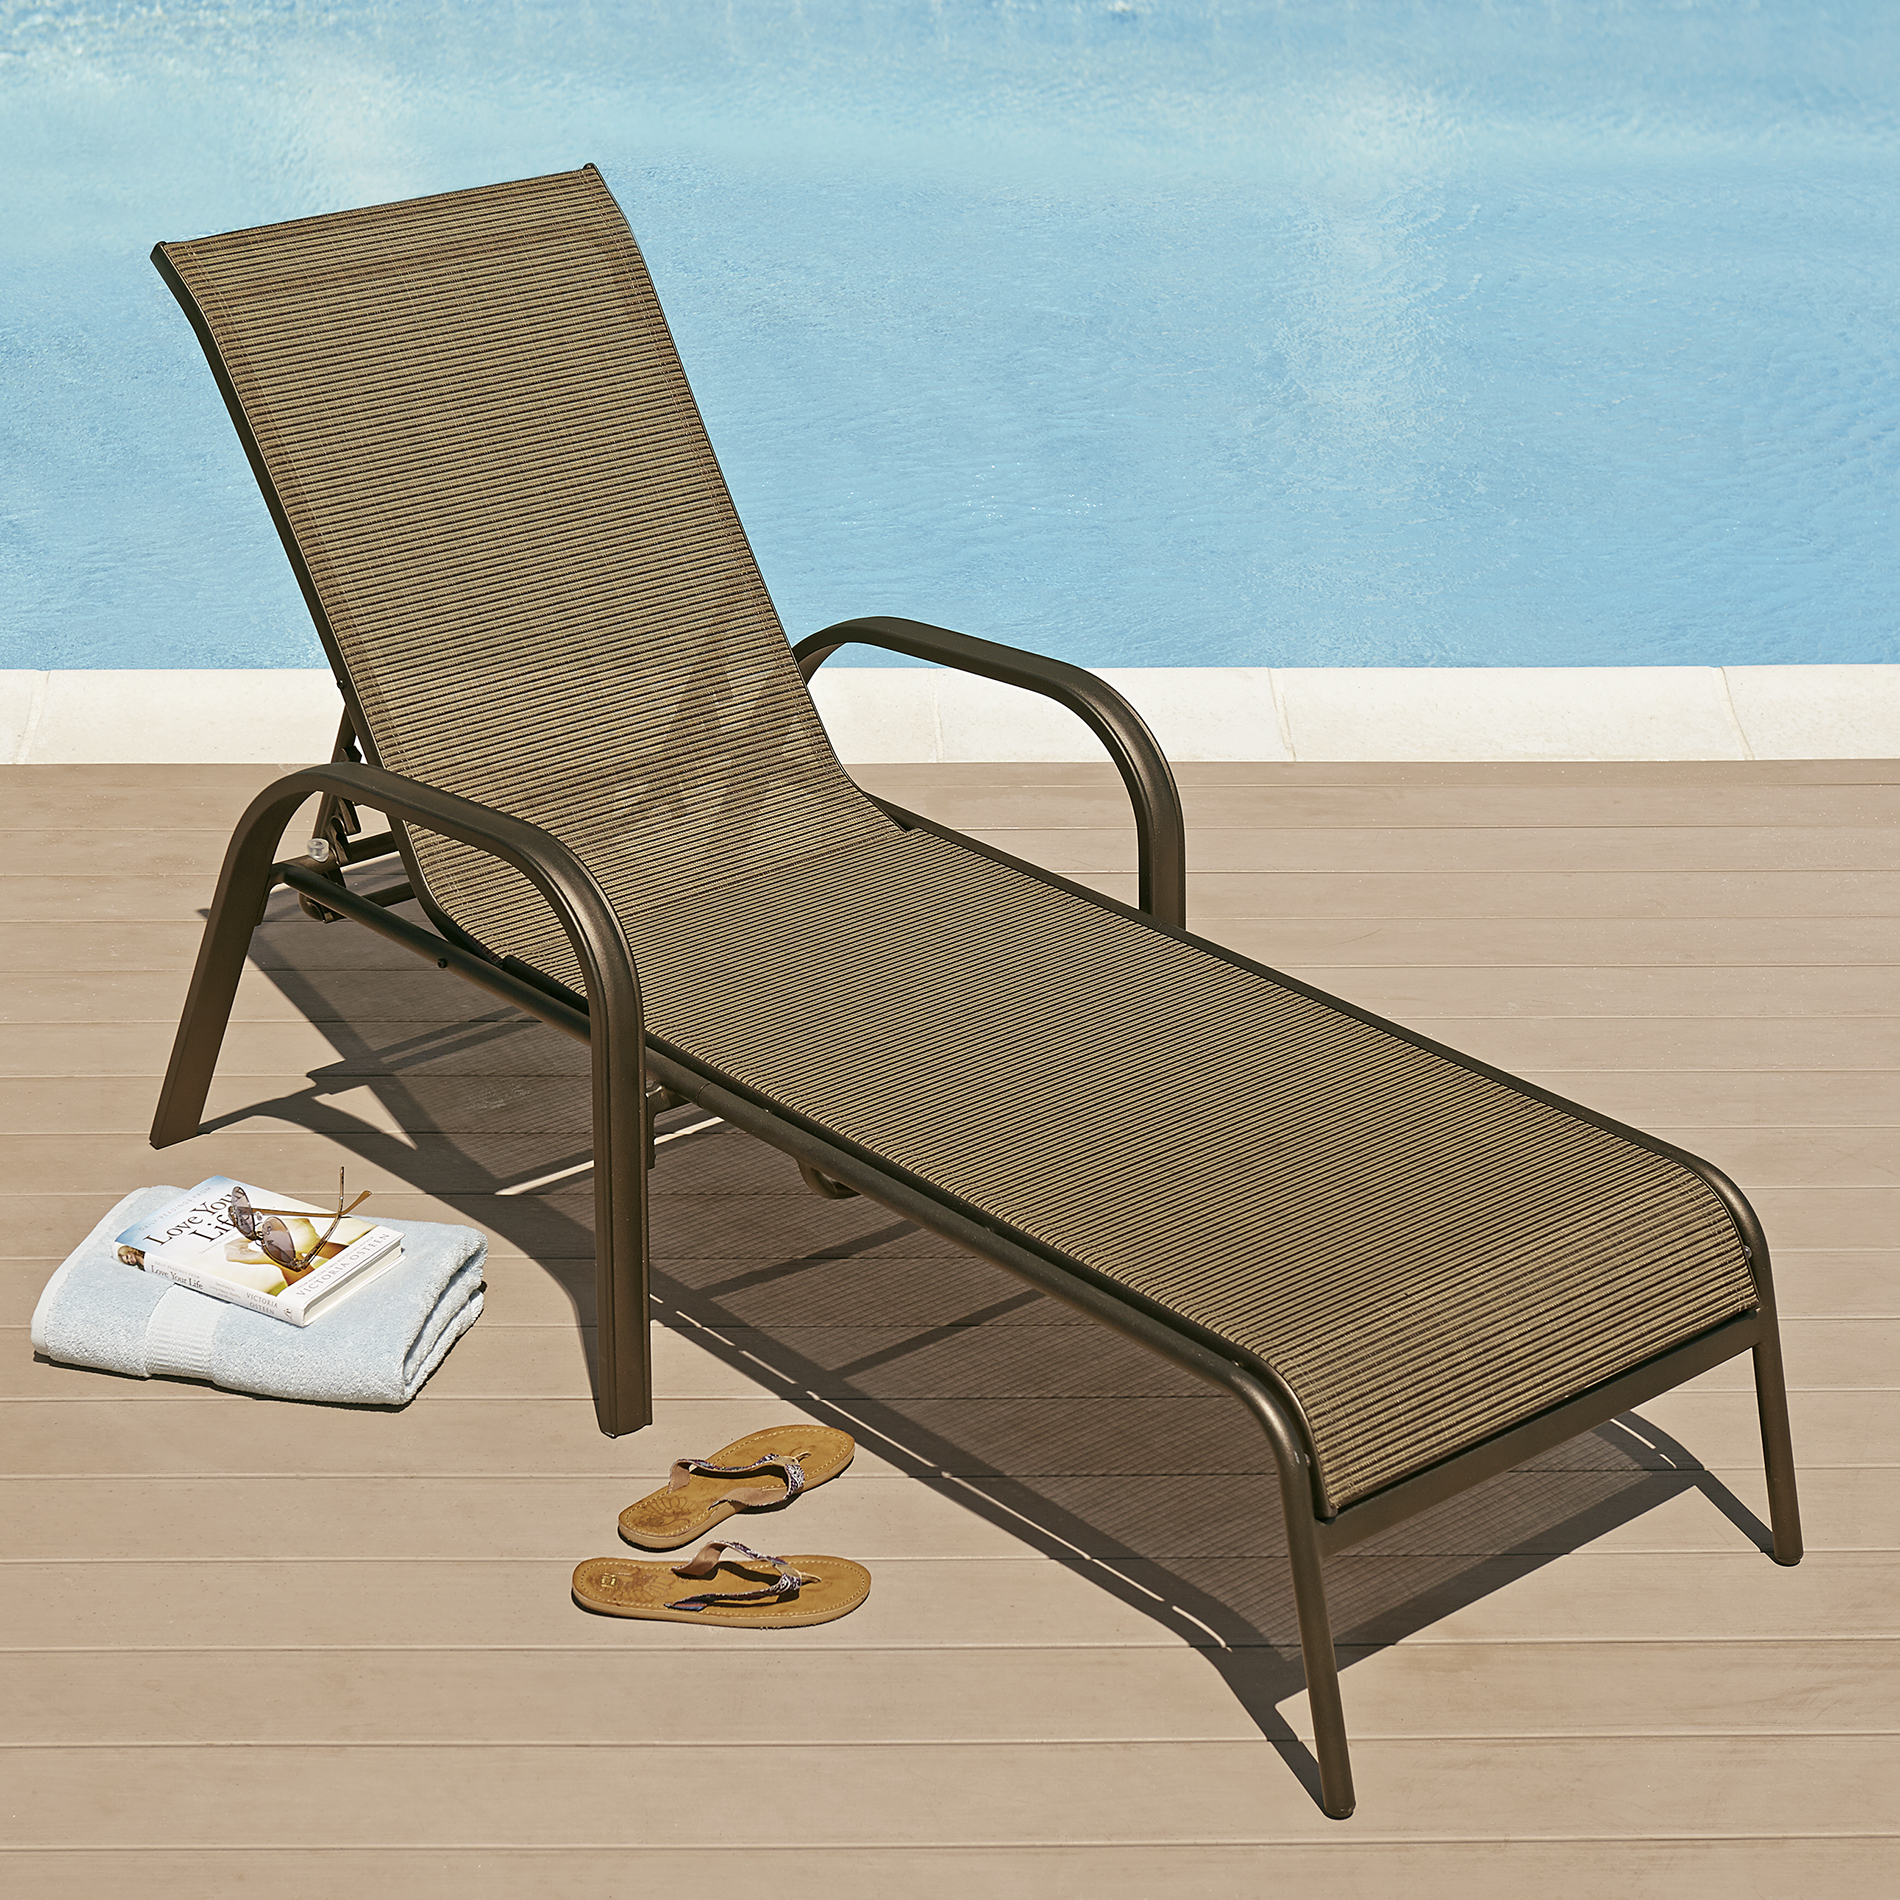 Sling Chaise Lounge Chair Grand Harbor Edgewater Sling Lounge Outdoor Living